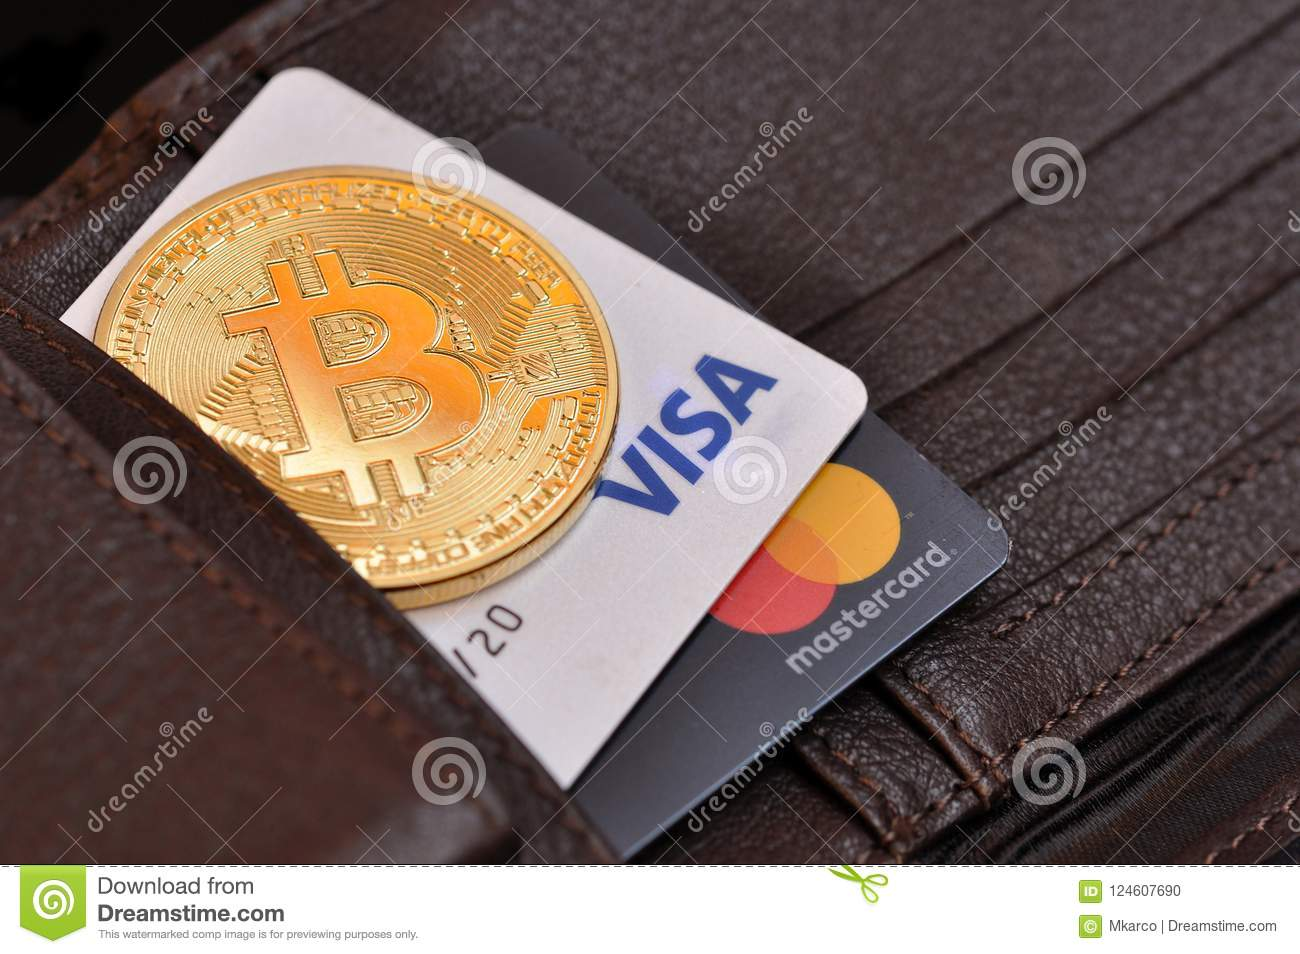 Rome, Italy, August 18, 2018. Bitcoin gold coin and debit cards